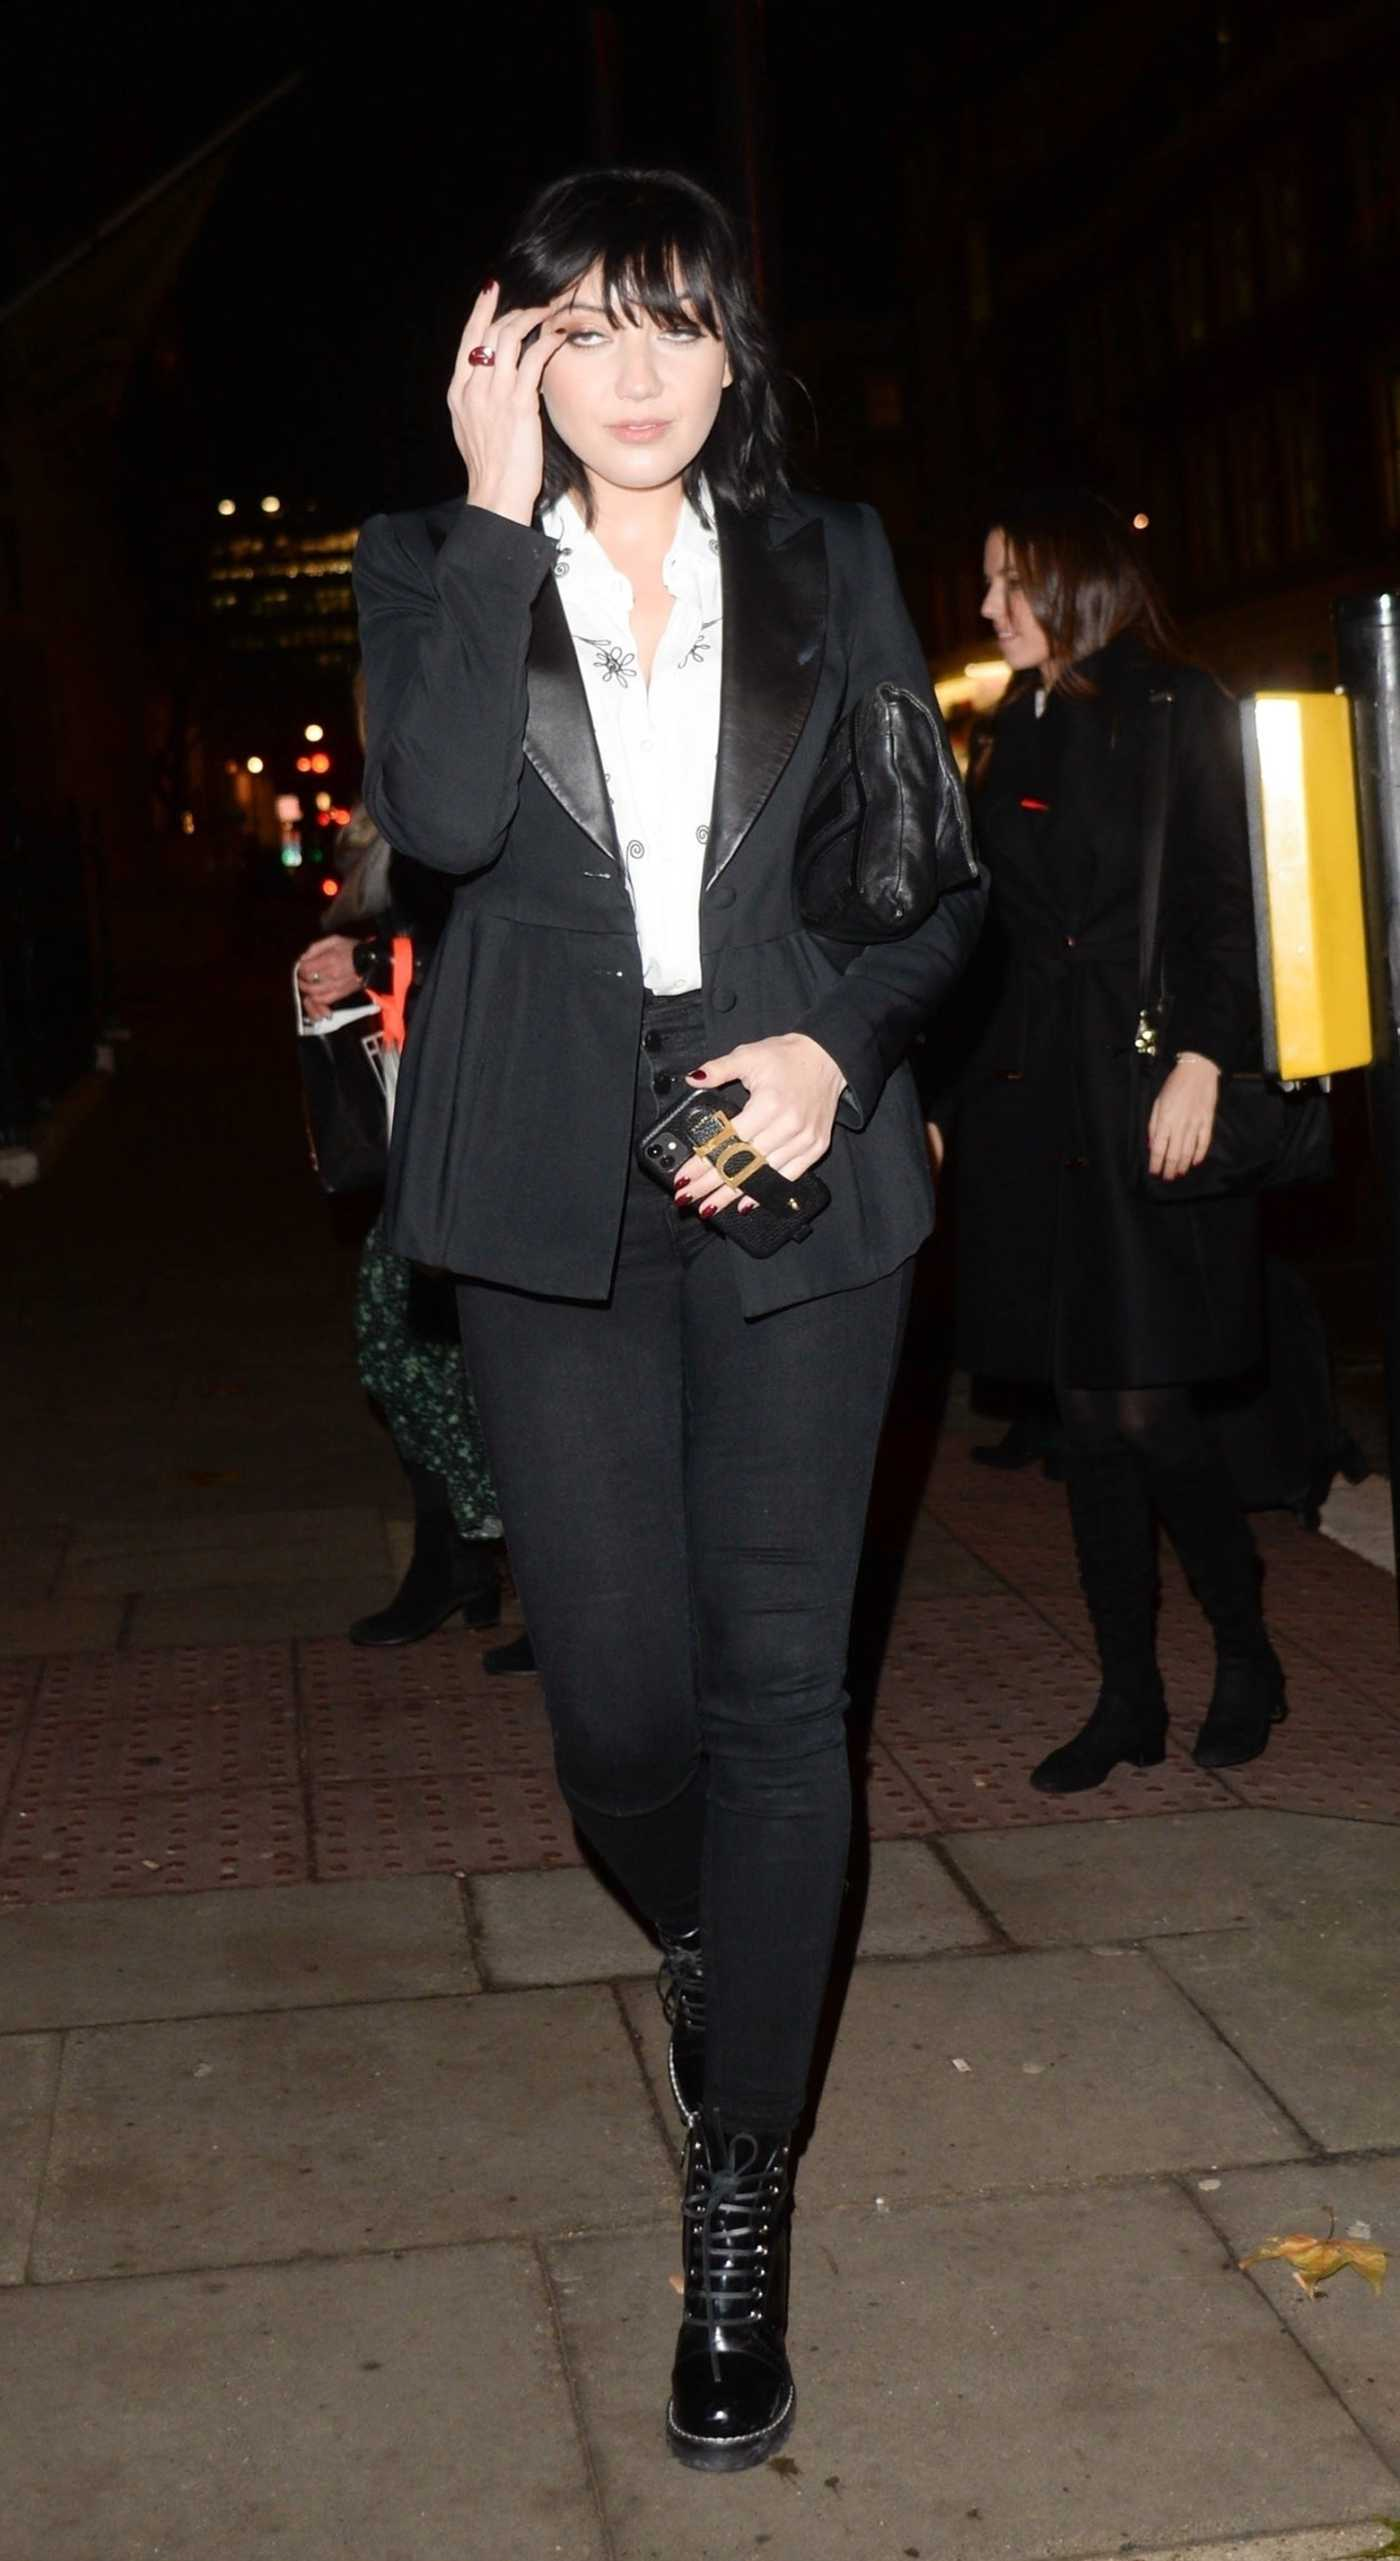 Daisy Lowe in a Black Blazer Arrives at Tanqueray No Ten Launch in London 12/05/2019